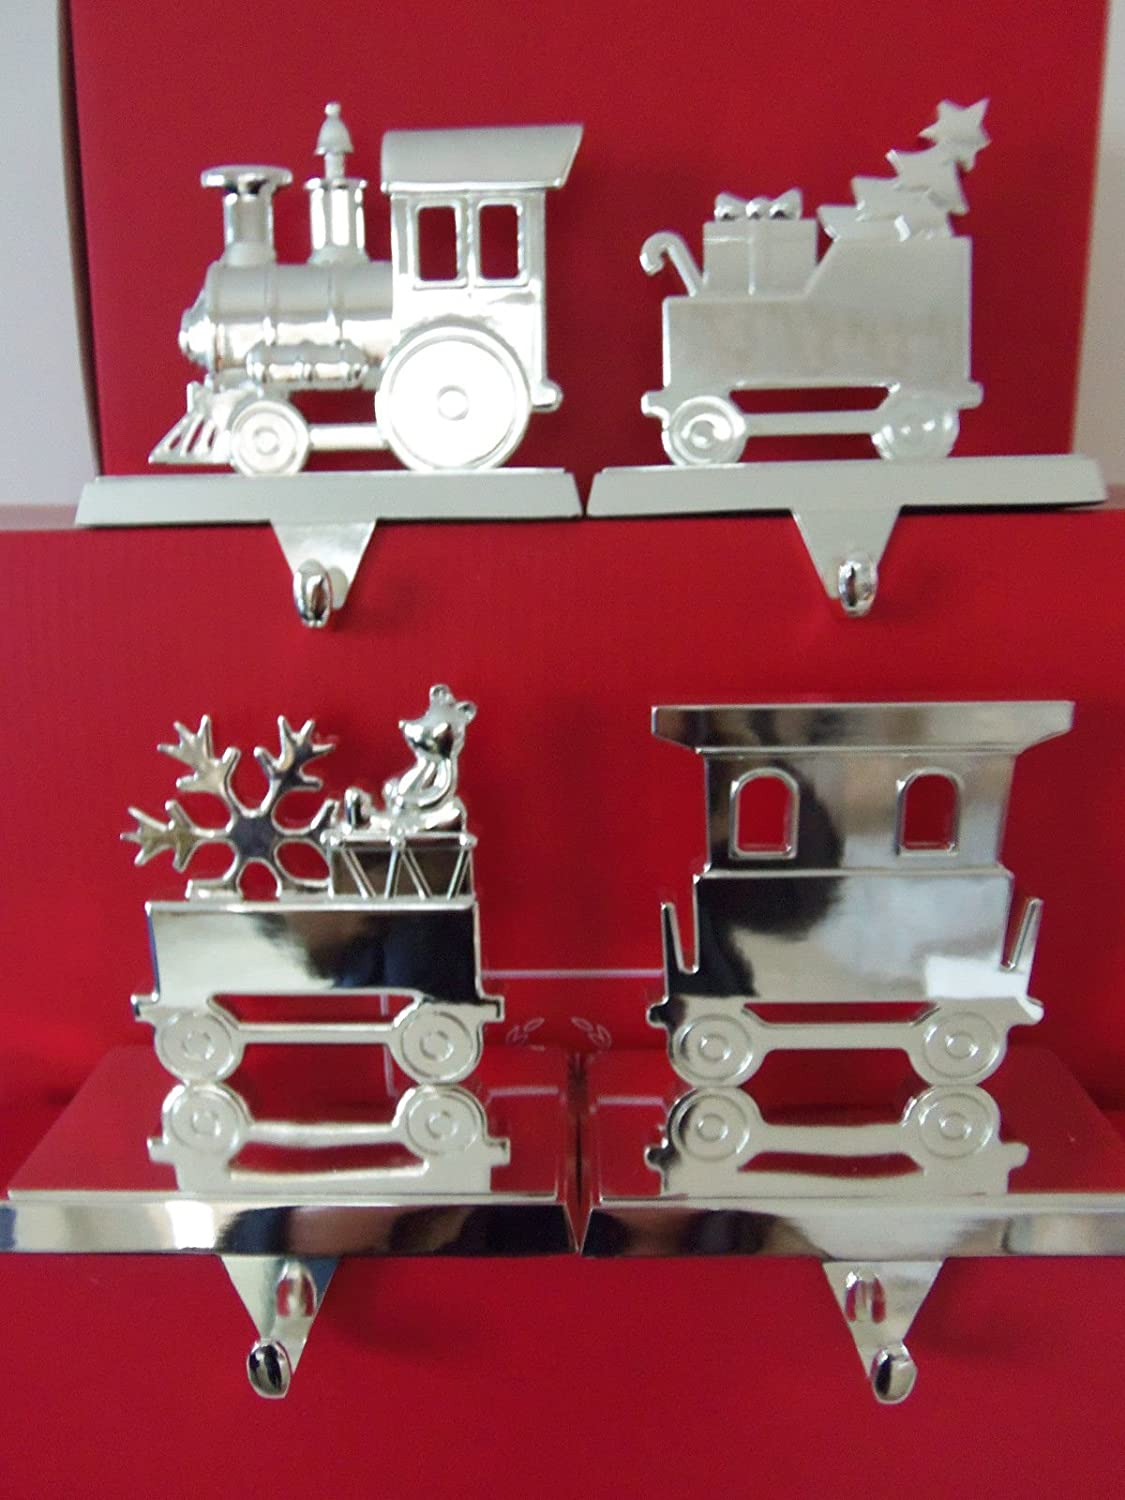 Silver Train Christmas Stocking Hanger Set: Amazon.ca: Home & Kitchen